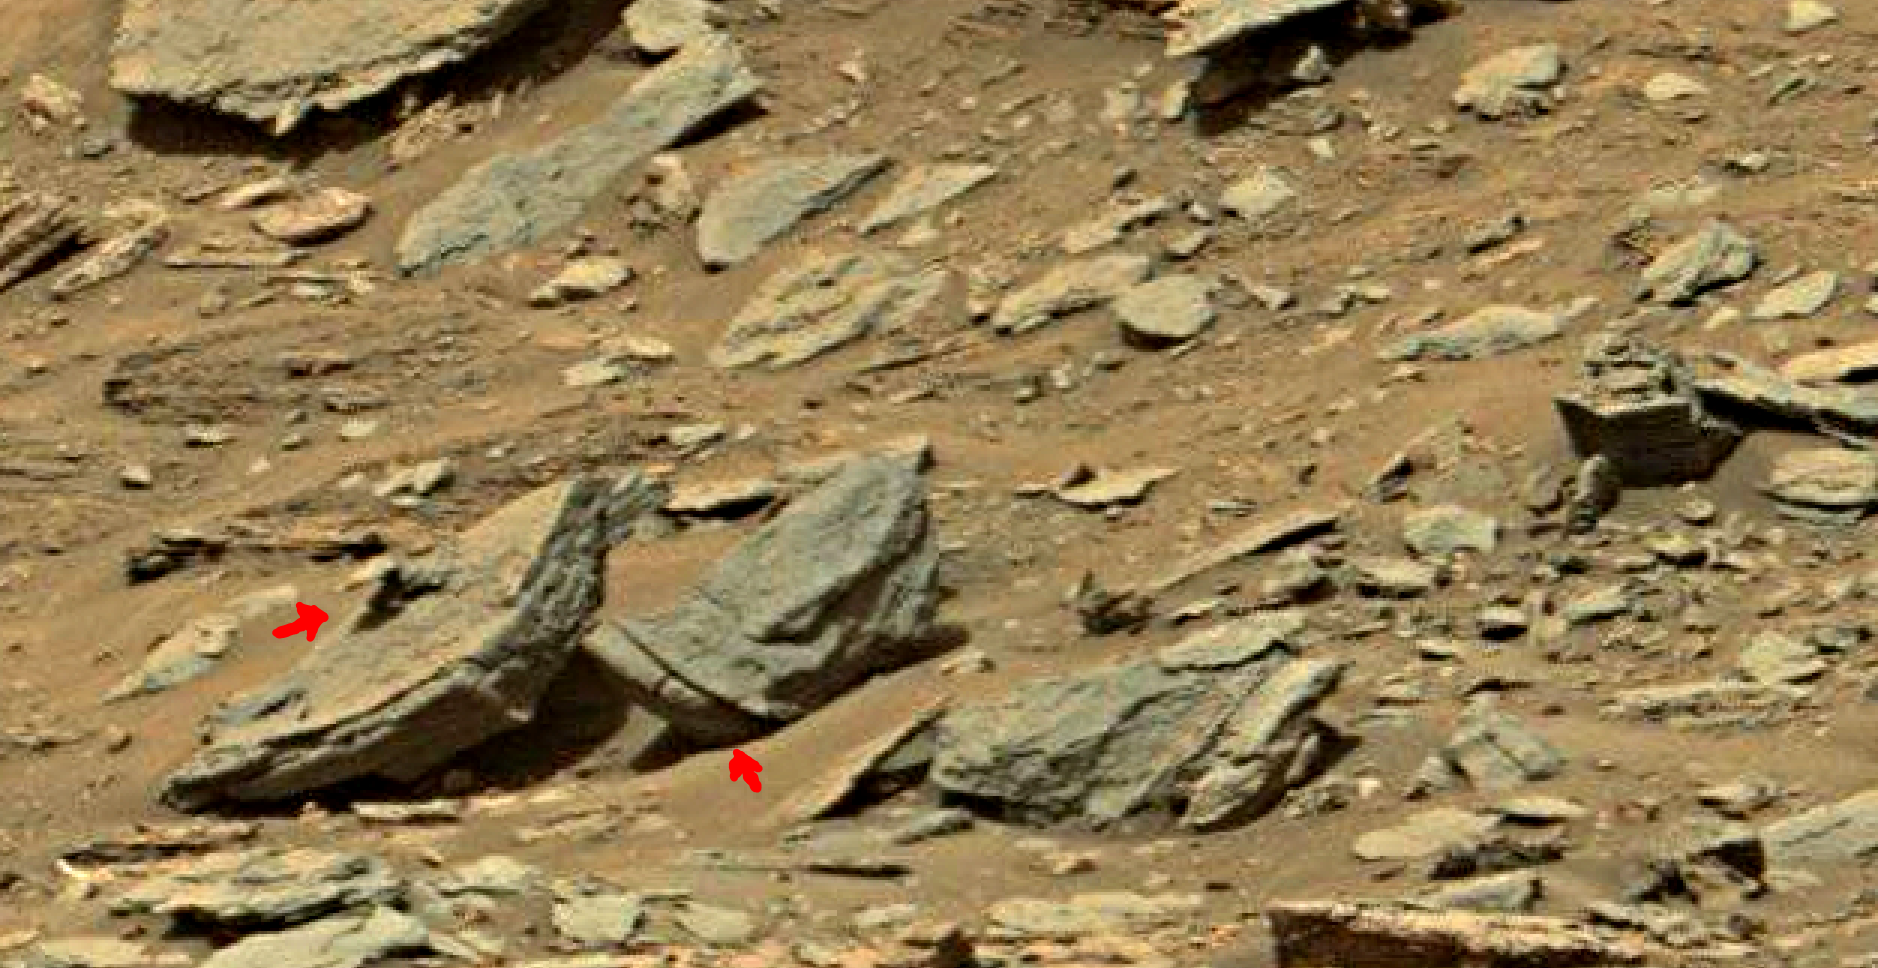 mars sol 1447 anomaly artifacts 10 - was life on mars